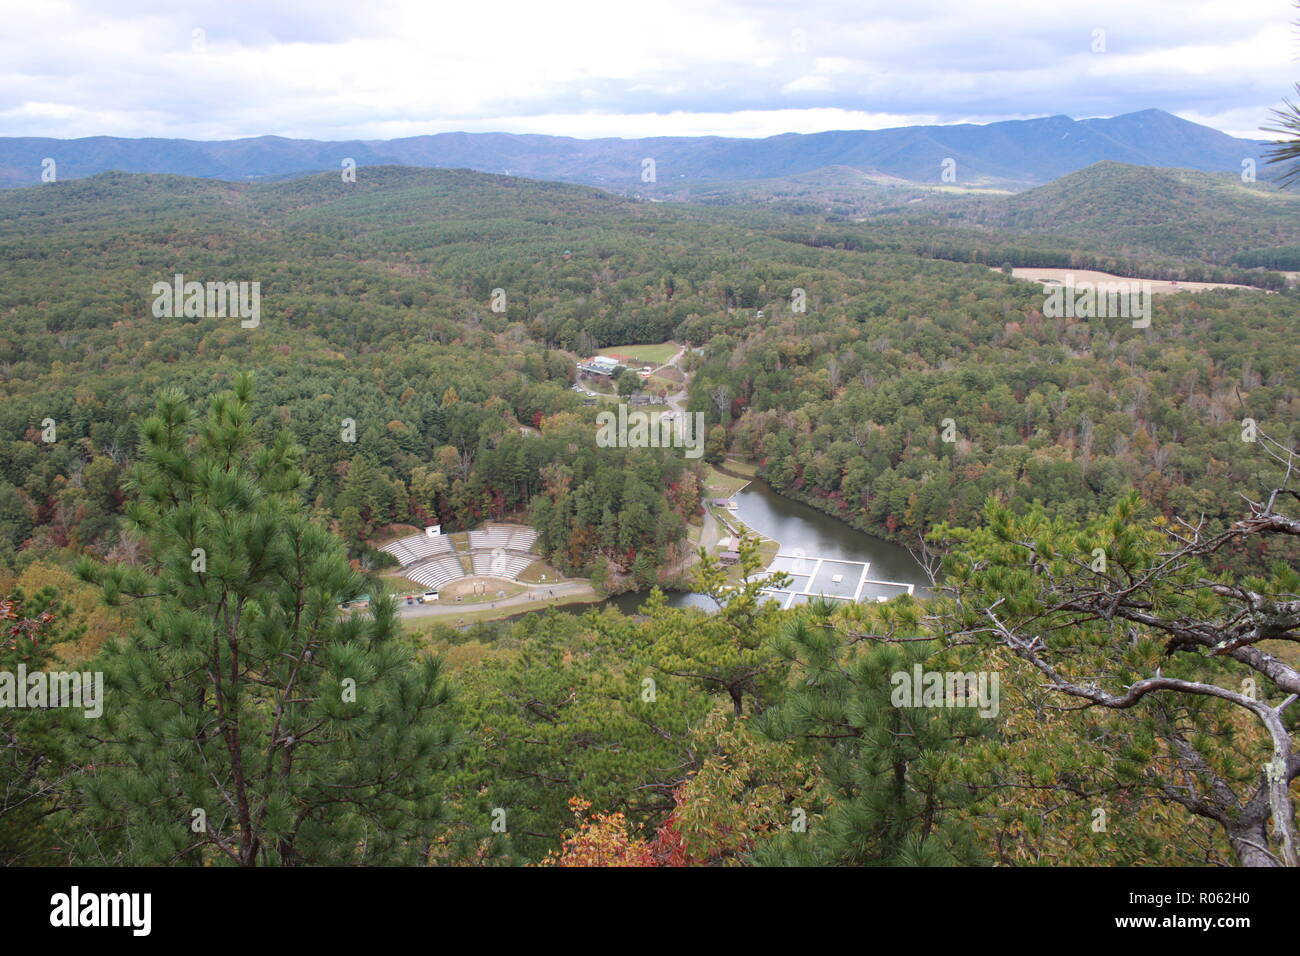 Camp Raven Knob Boy Scout Camp from the Knob during the fall. - Stock Image